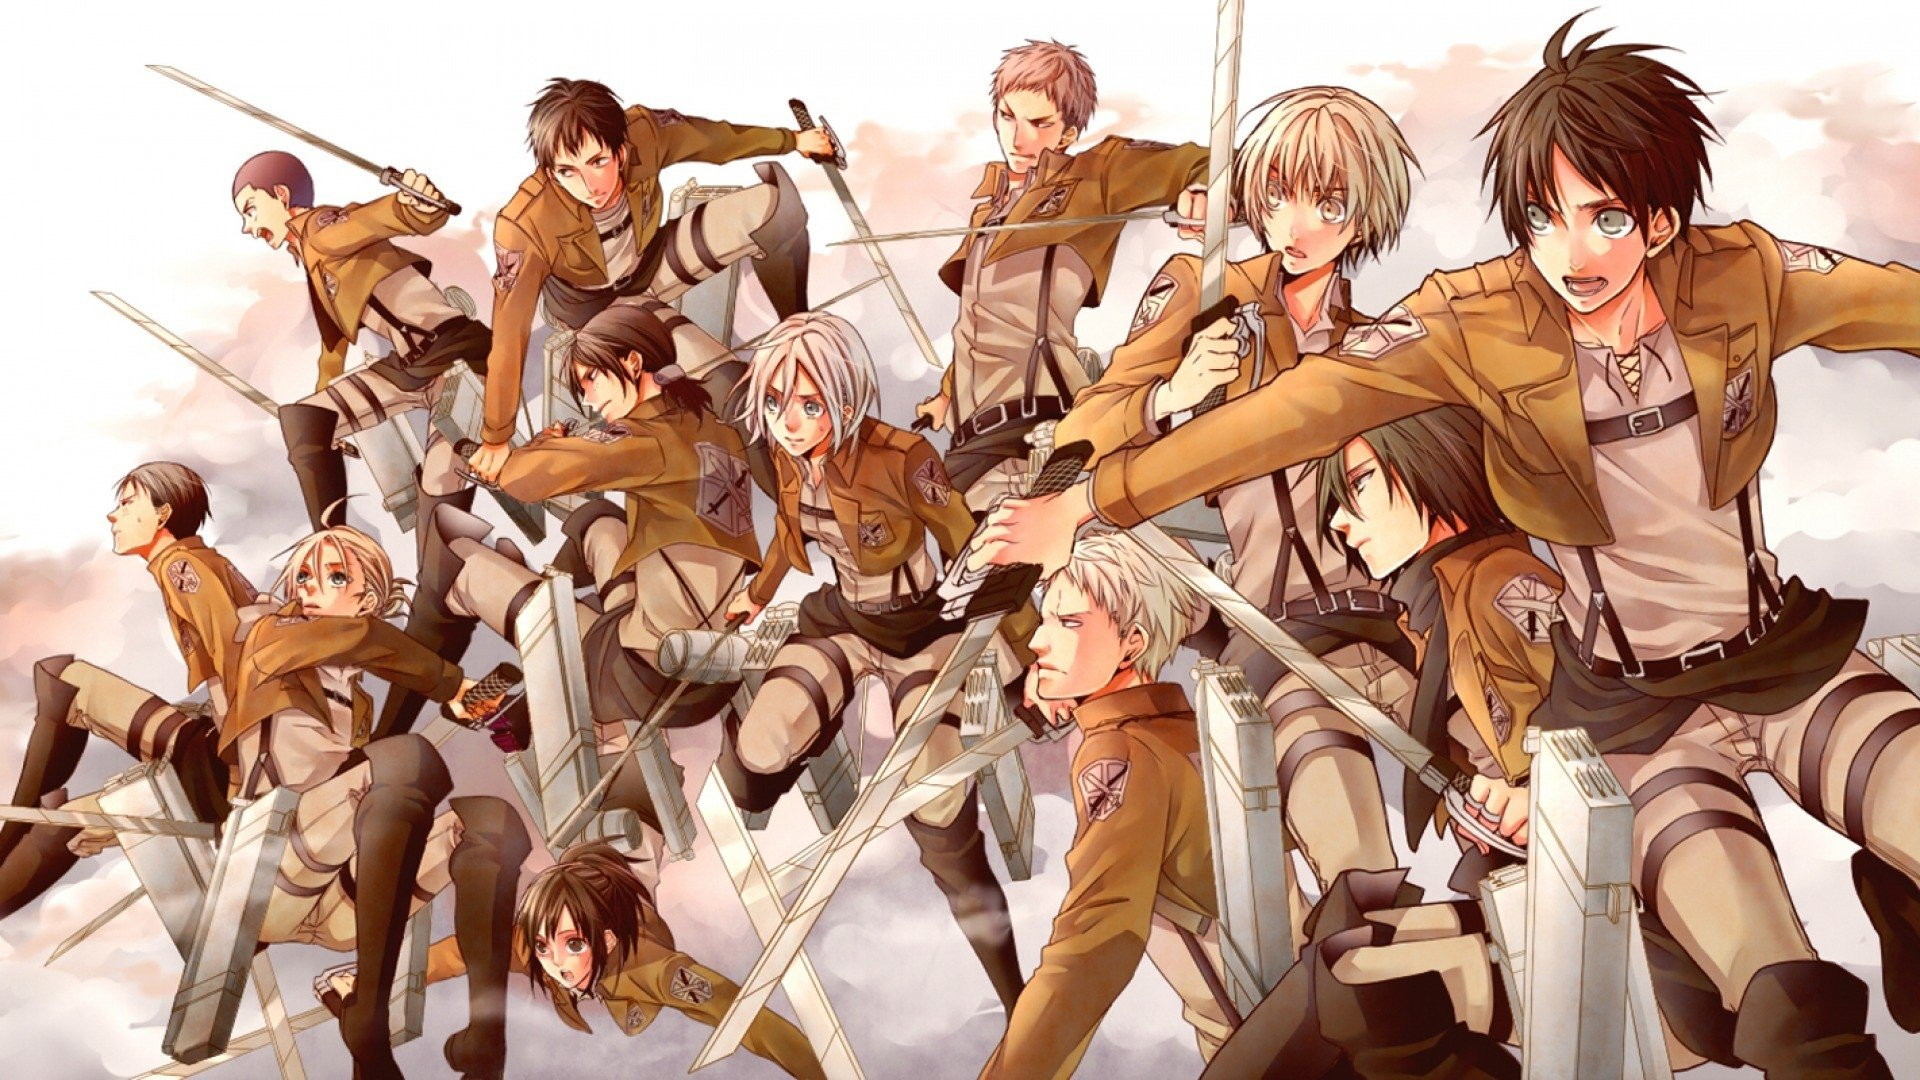 hd wallpaper background id607872 1920x1080 anime attack on titan